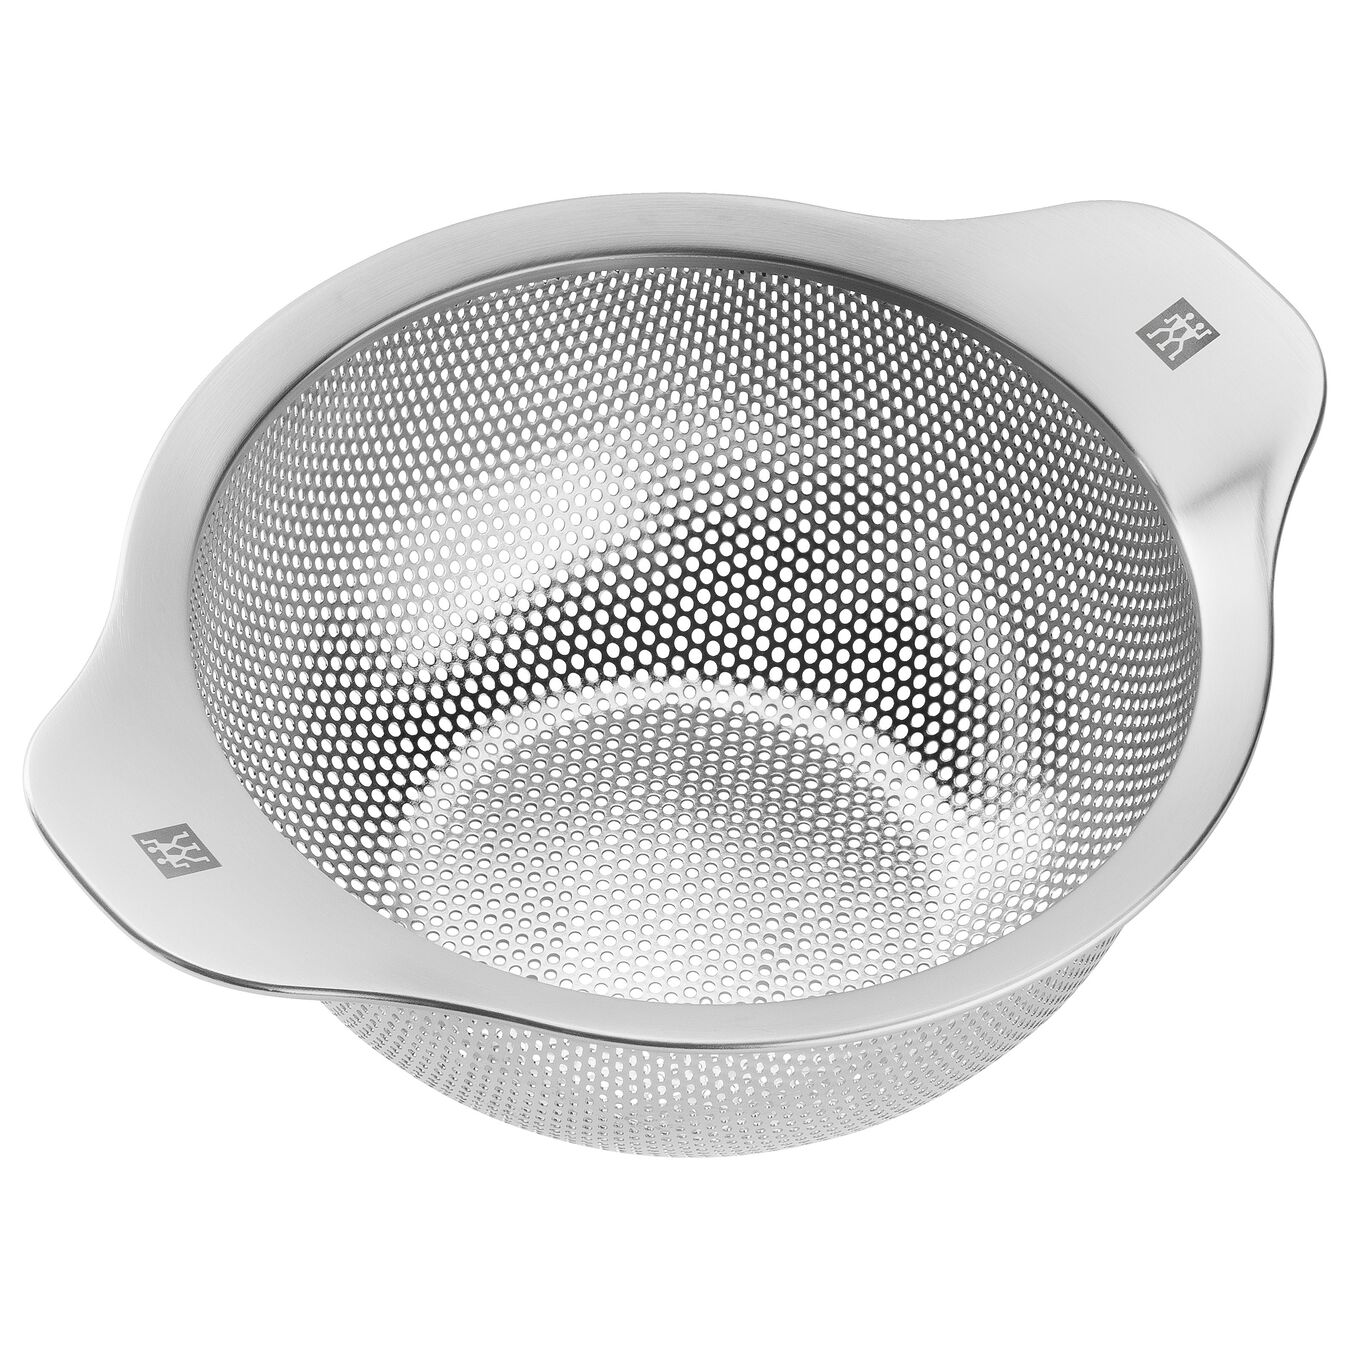 7-inch Colander, 18/10 Stainless Steel ,,large 2